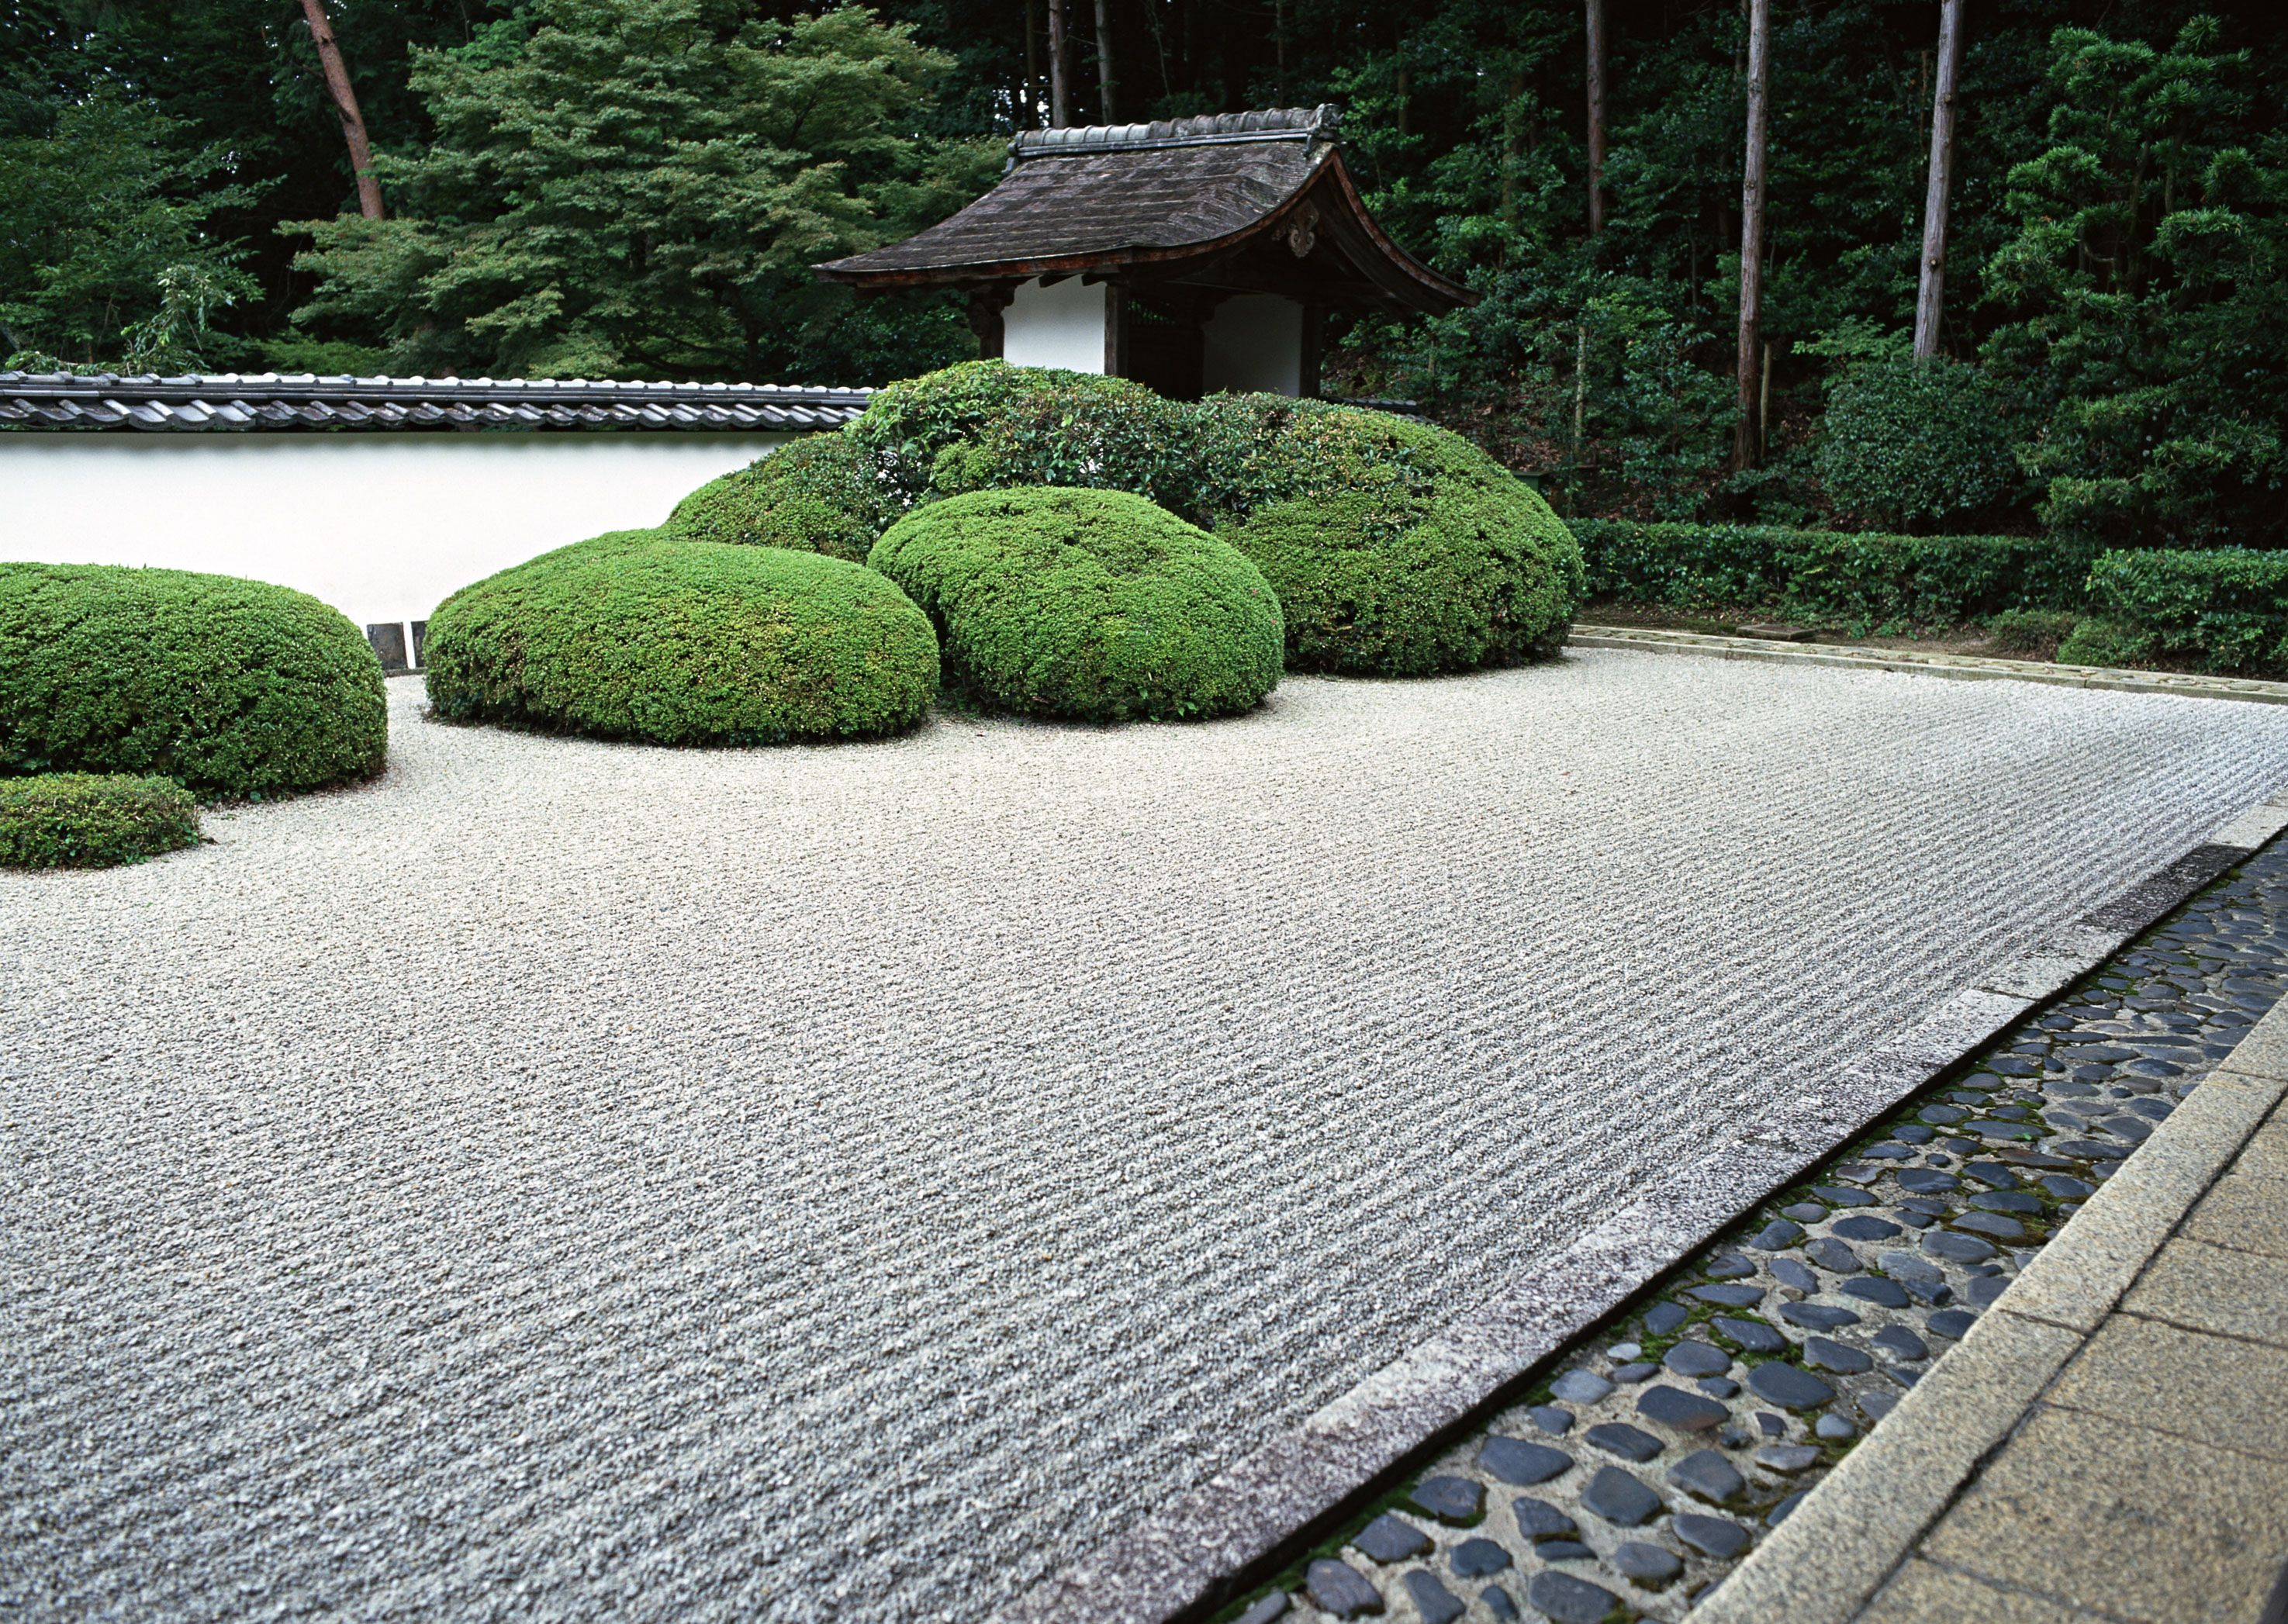 This Japanese zen garden features beautifully combed gravel and an open and  playful format.